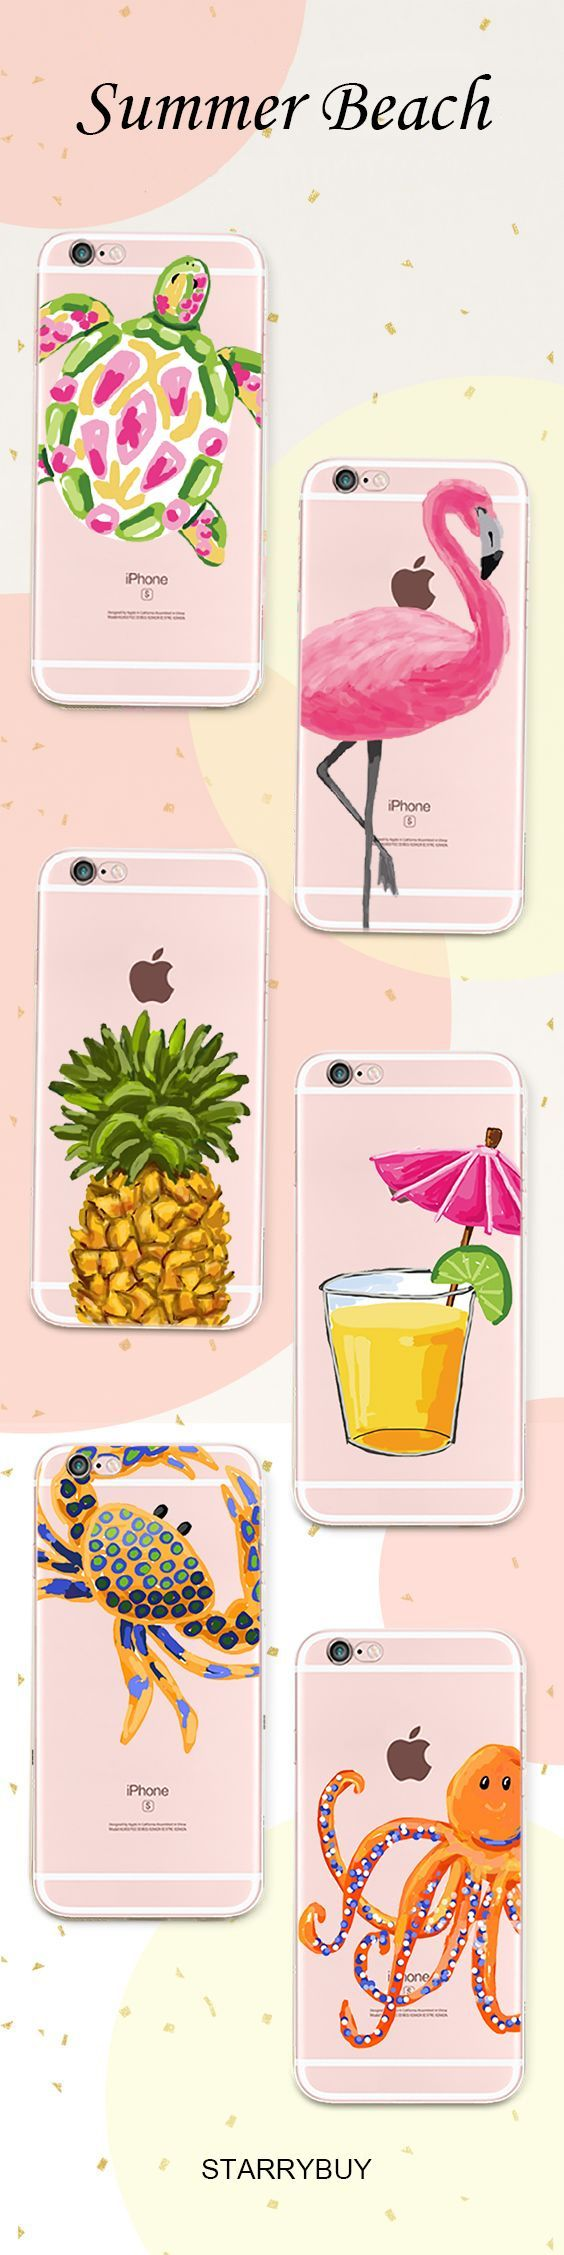 Iphone Case- Fndaa dd Celukar de Summer _* Verano